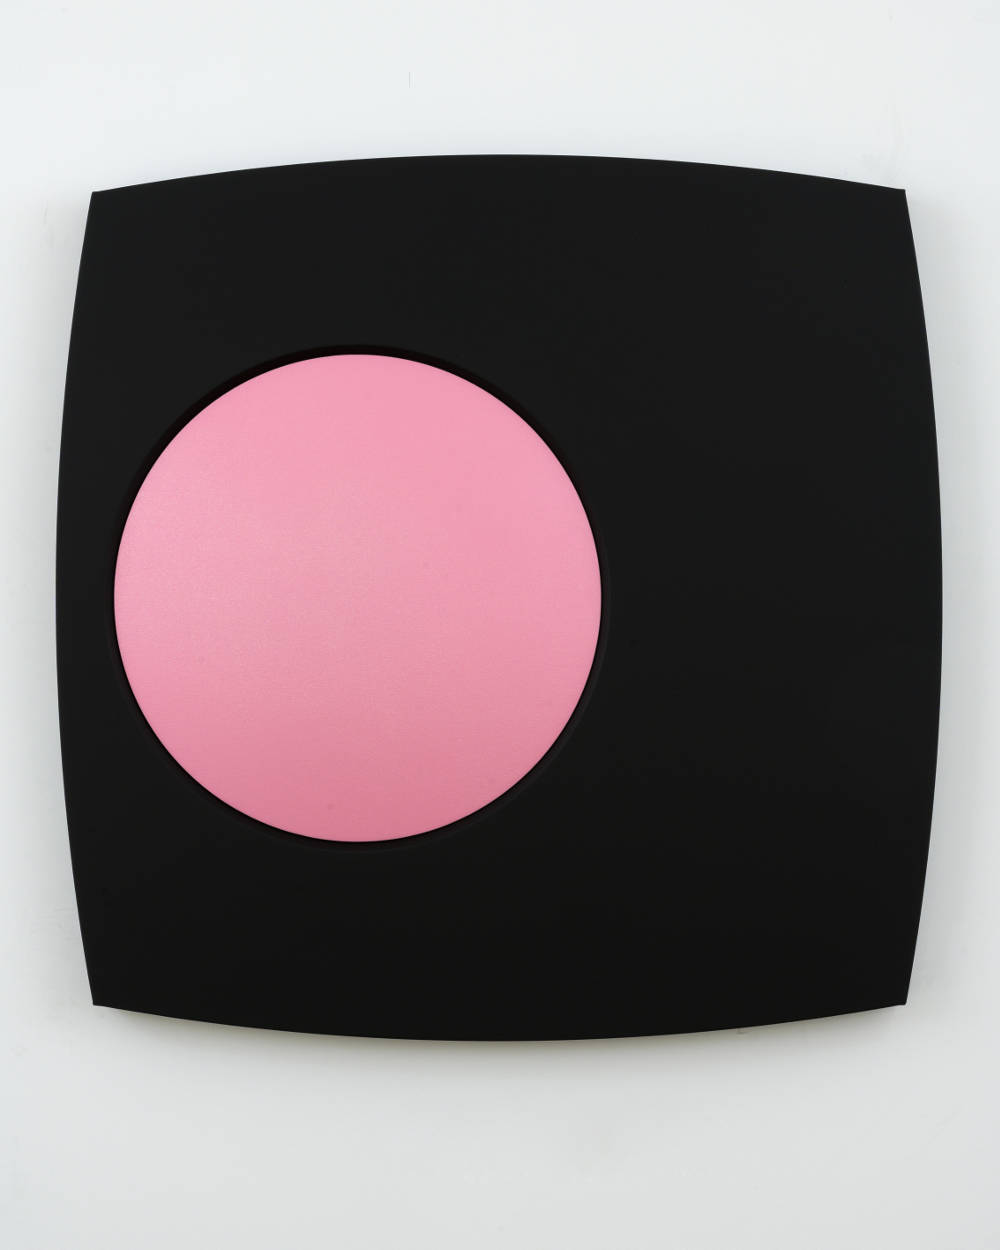 Sylvie Fleury, Pink Explosion, 2018. Acrylic on canvas on wood 15 kgs 120 x 120 x 12,2 cm (47,24 x 47,24 x 4,8 in) Courtesy Galerie Thaddaeus Ropac, London / Paris / Salzburg © Sylvie Fleury. Photo: Charles Duprat